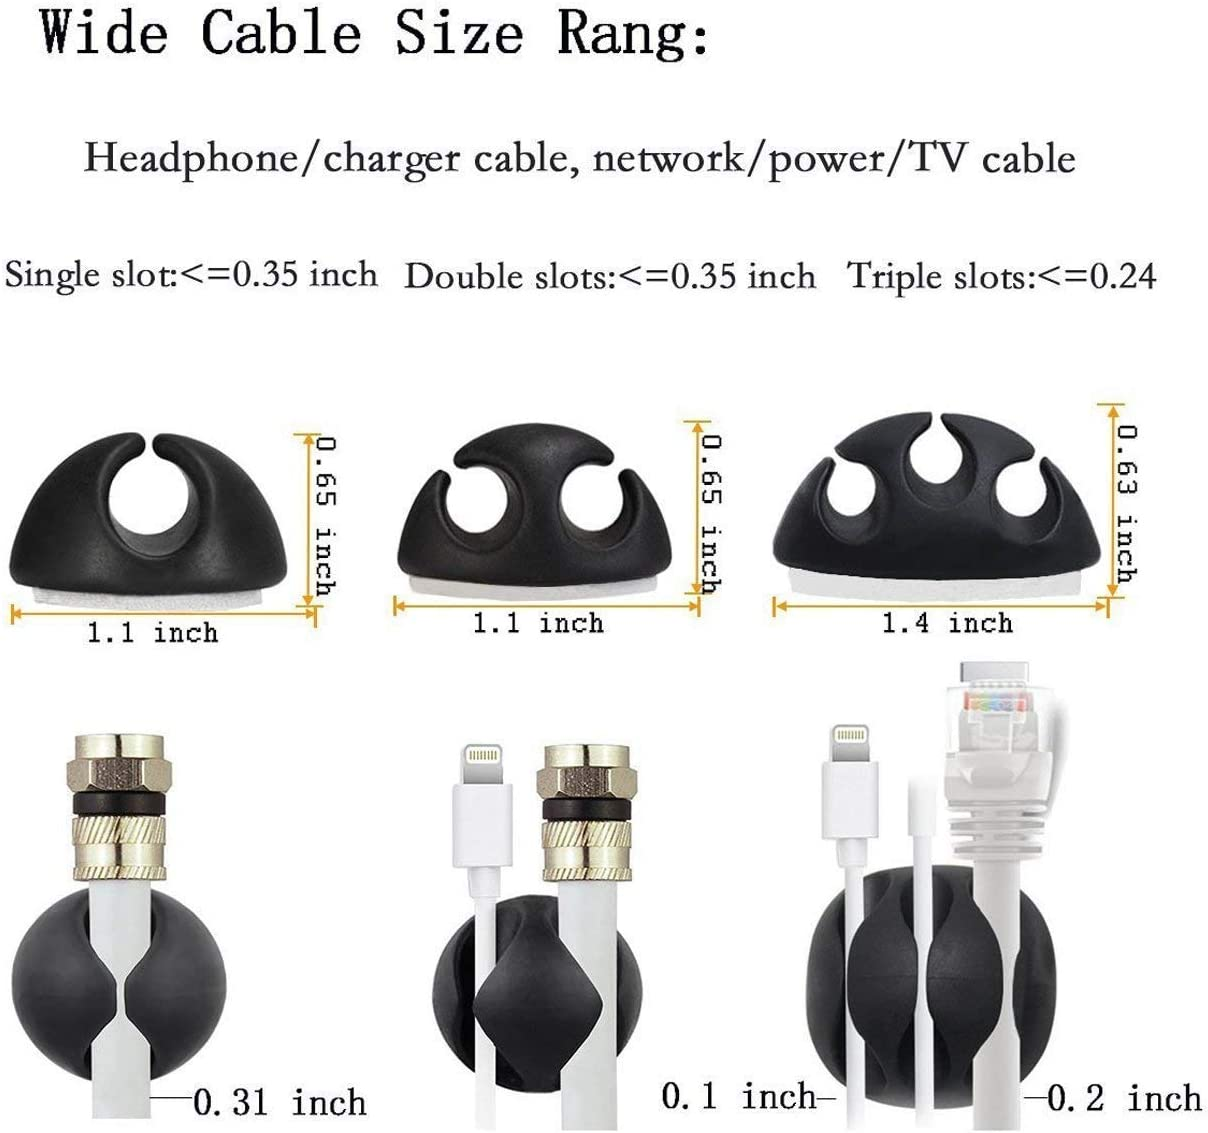 Charging and Mouse Multipurpose 12 Pack Black Cable Clips Viaky Wire Management for Your Wires Self Adhesive Cord Holders Desk Cable Organizer Tachograph Cord Earphone line Computer